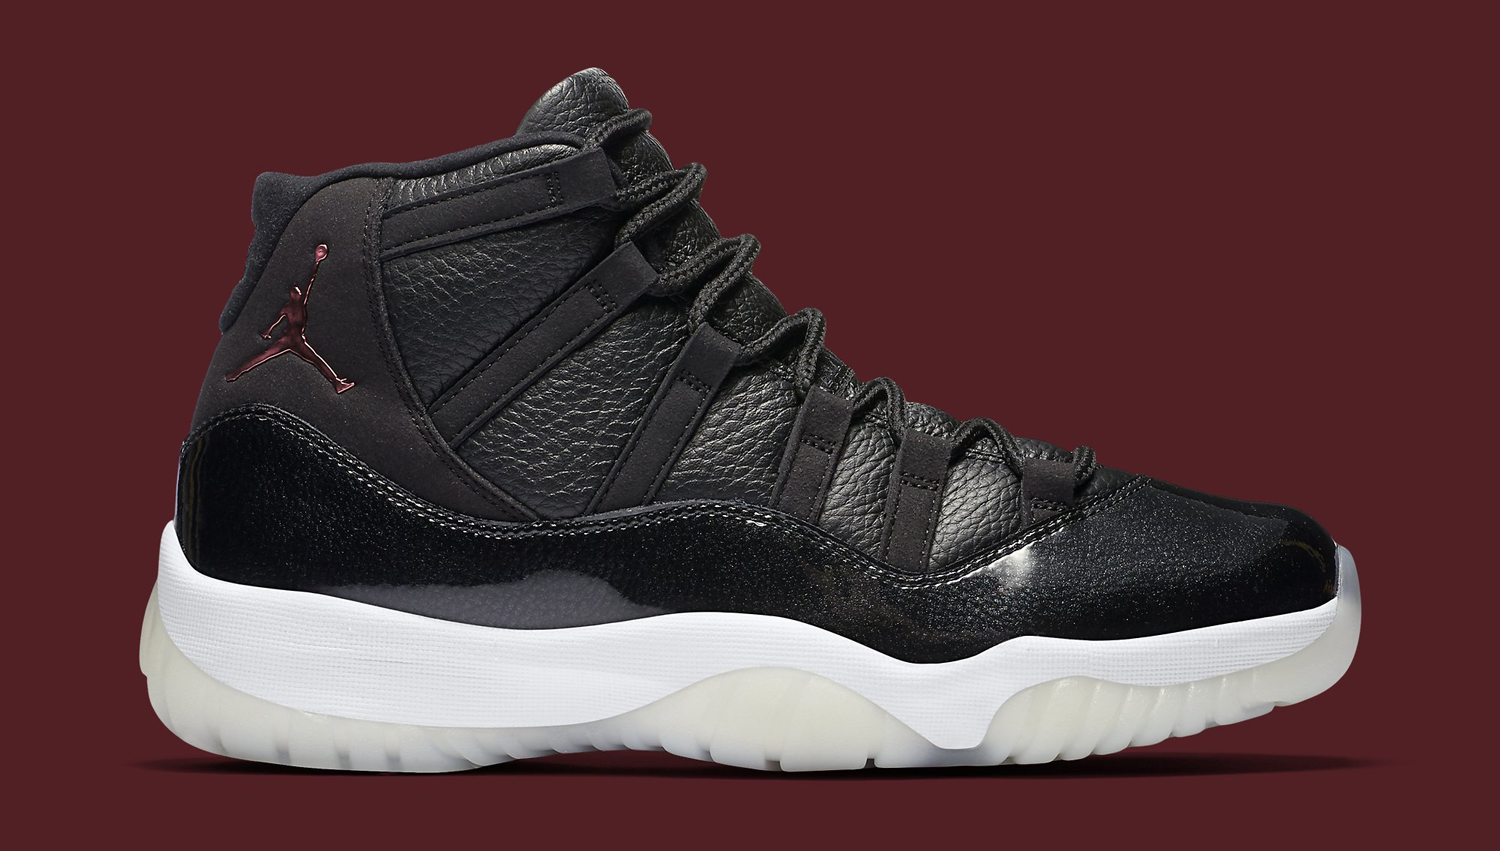 Air Jordan 11 Retro 72-10 Reconstitution Des Stocks